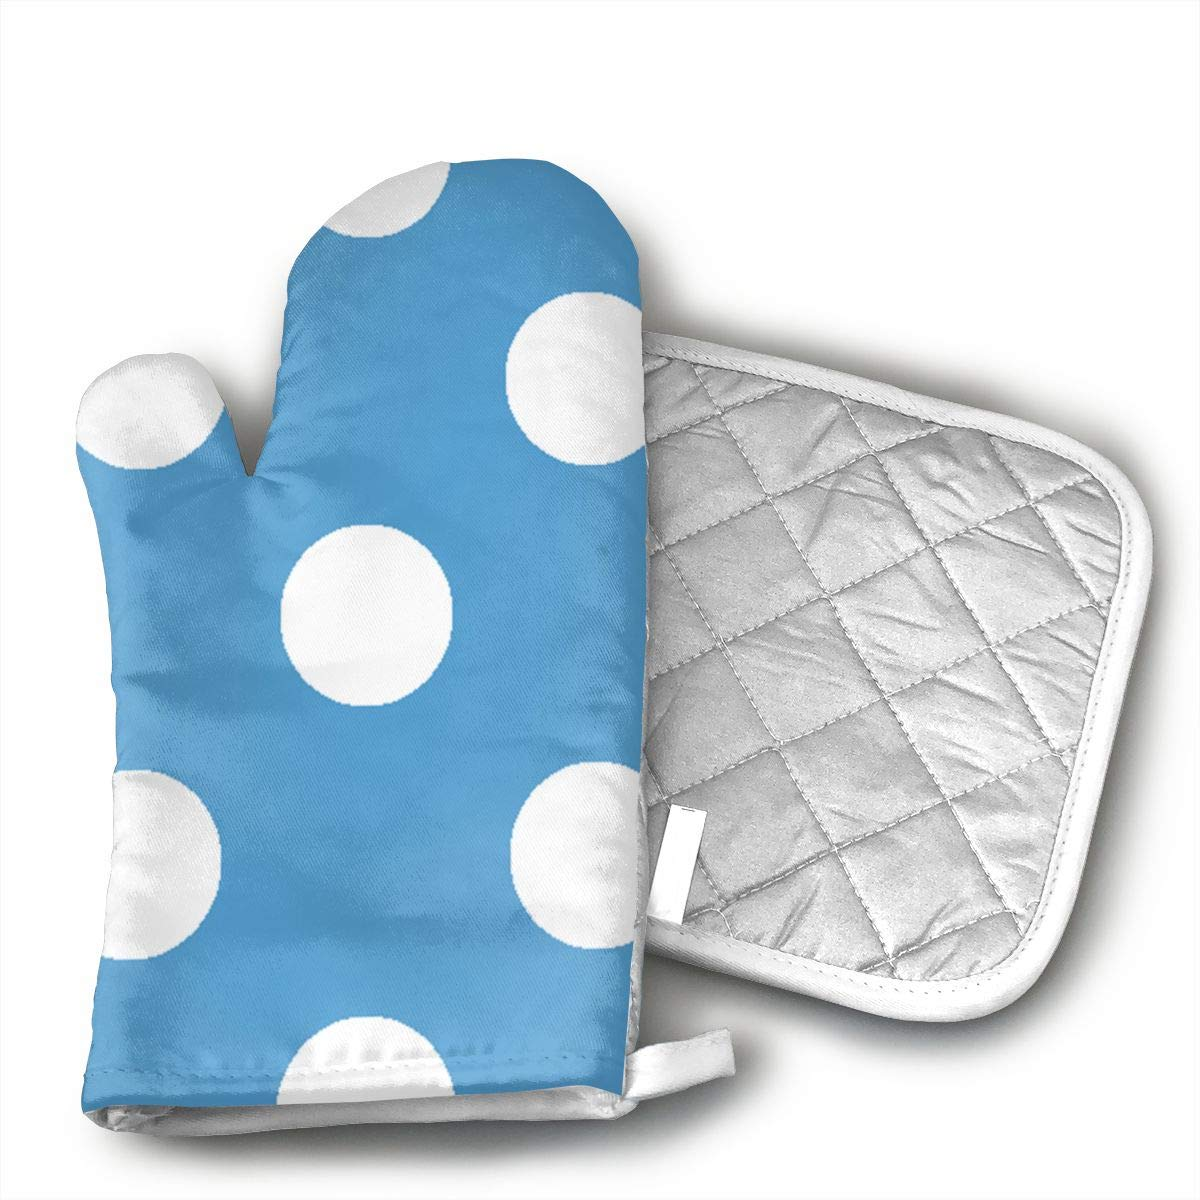 UYRHFS Carolina Blue and White Poka Dots Fabric (3249) Oven Mitts and Pot Holder Kitchen Set with, Heat Resistant, Oven Gloves and Pot Holders 2pcs Set for BBQ Cooking Baking